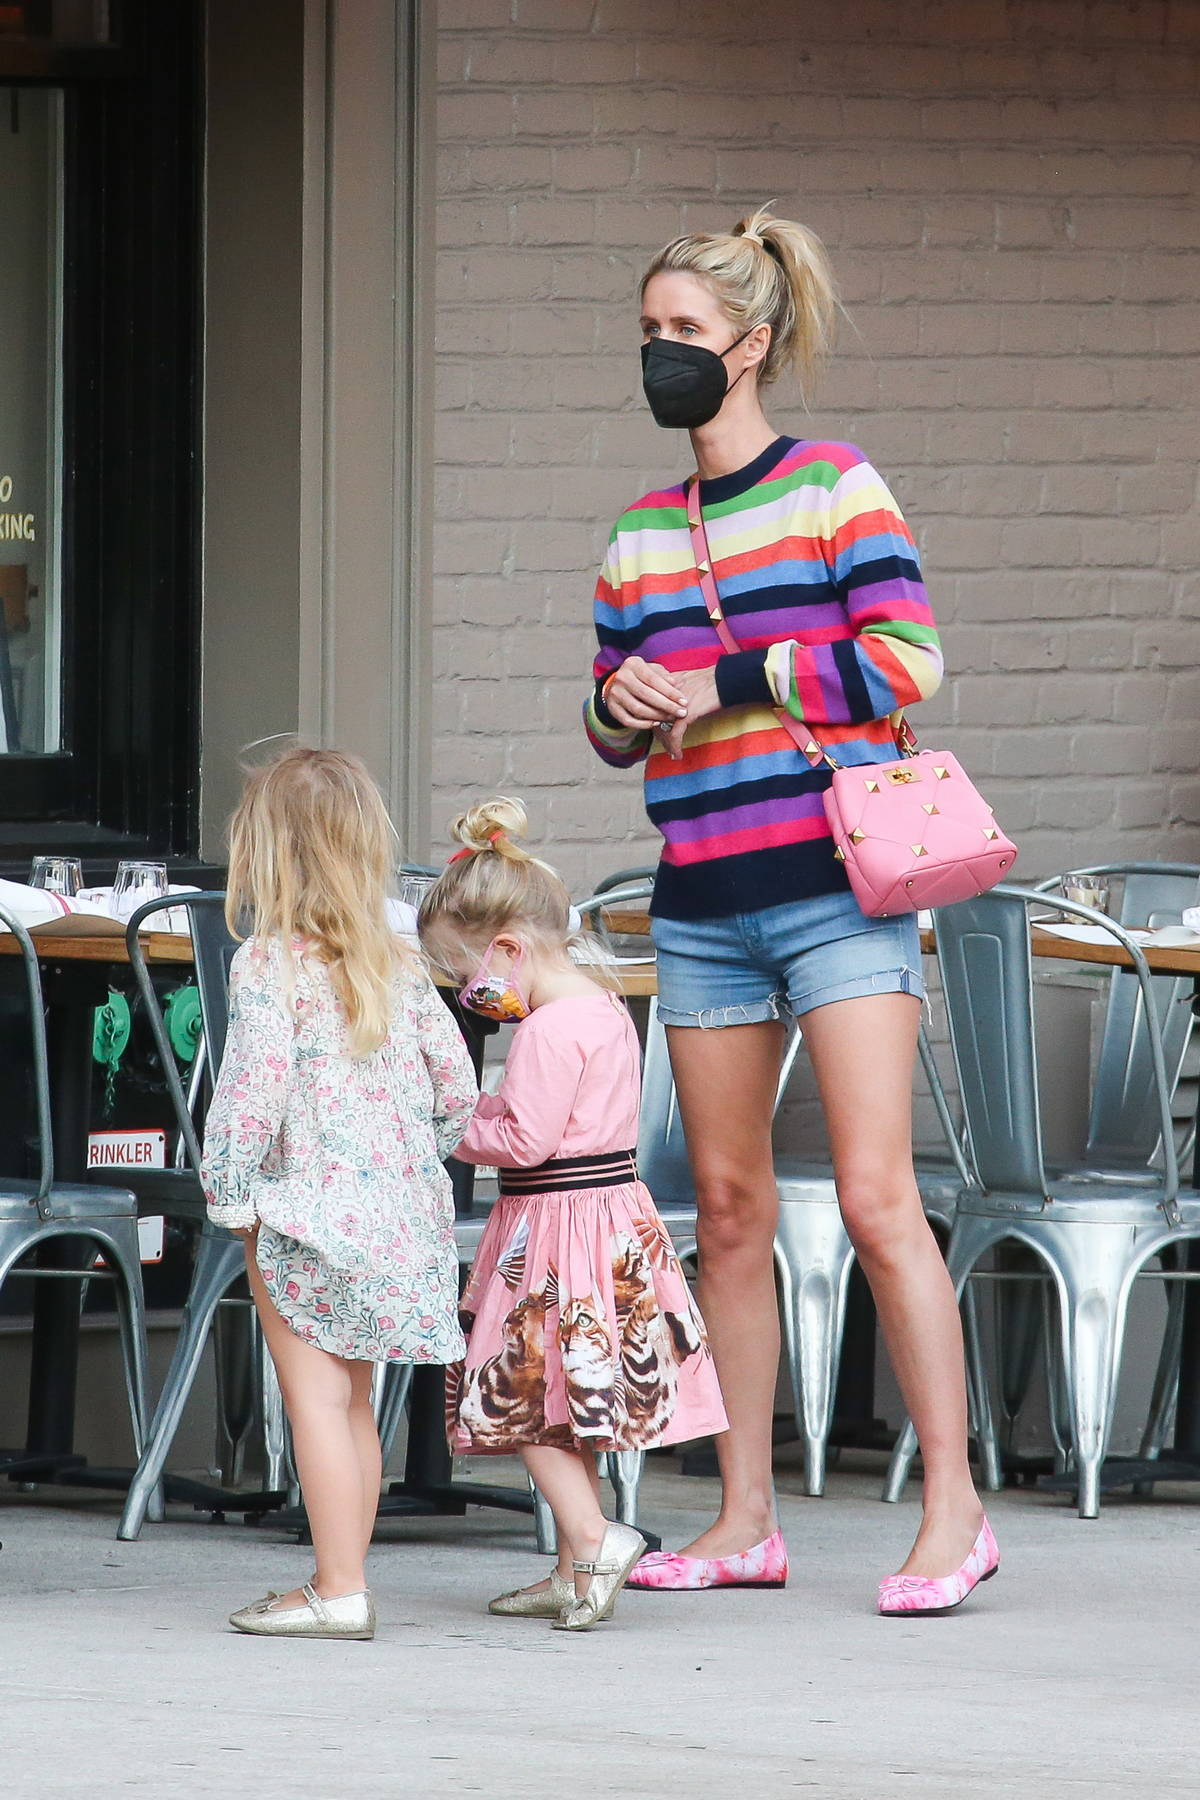 Nicky Hilton spotted in a colorful striped sweater while stepping out with her two daughters in New York City